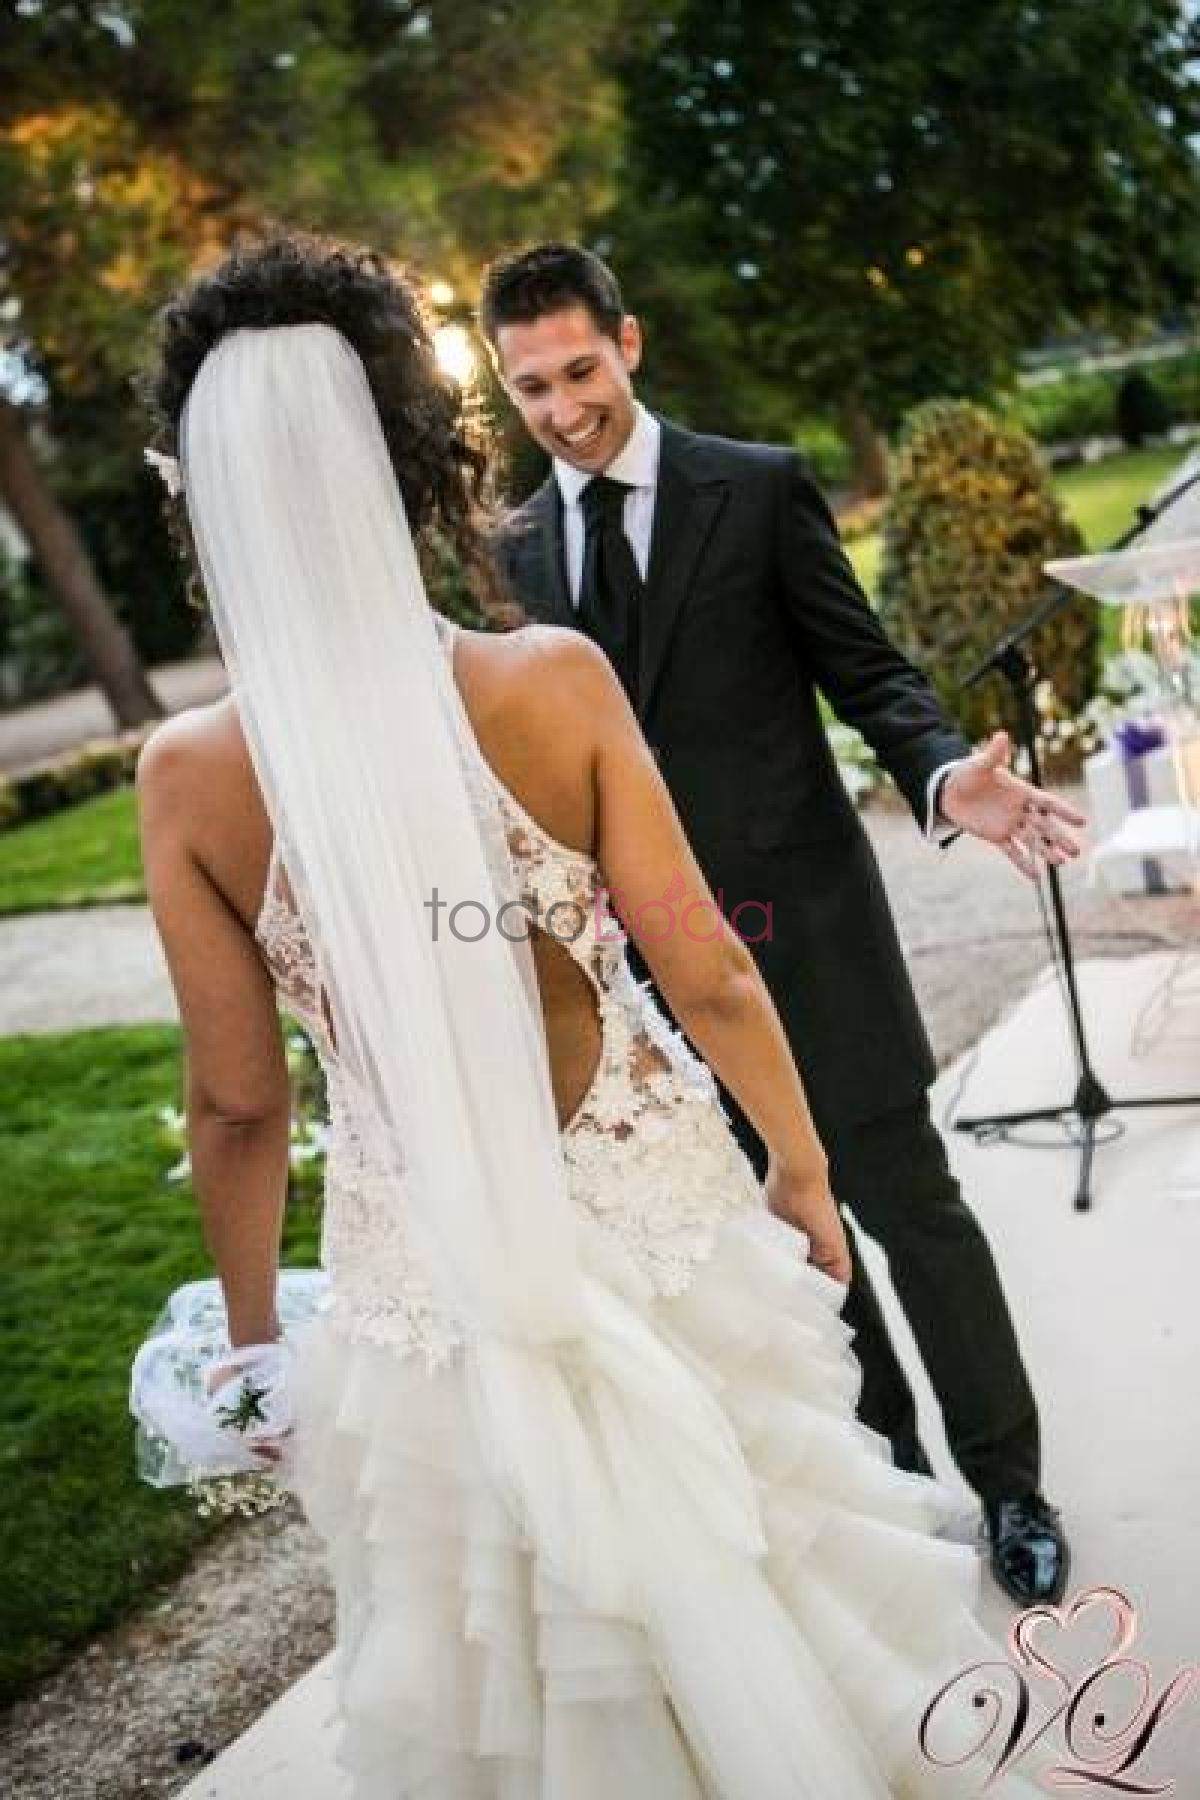 Tu boda en Videolovers 4